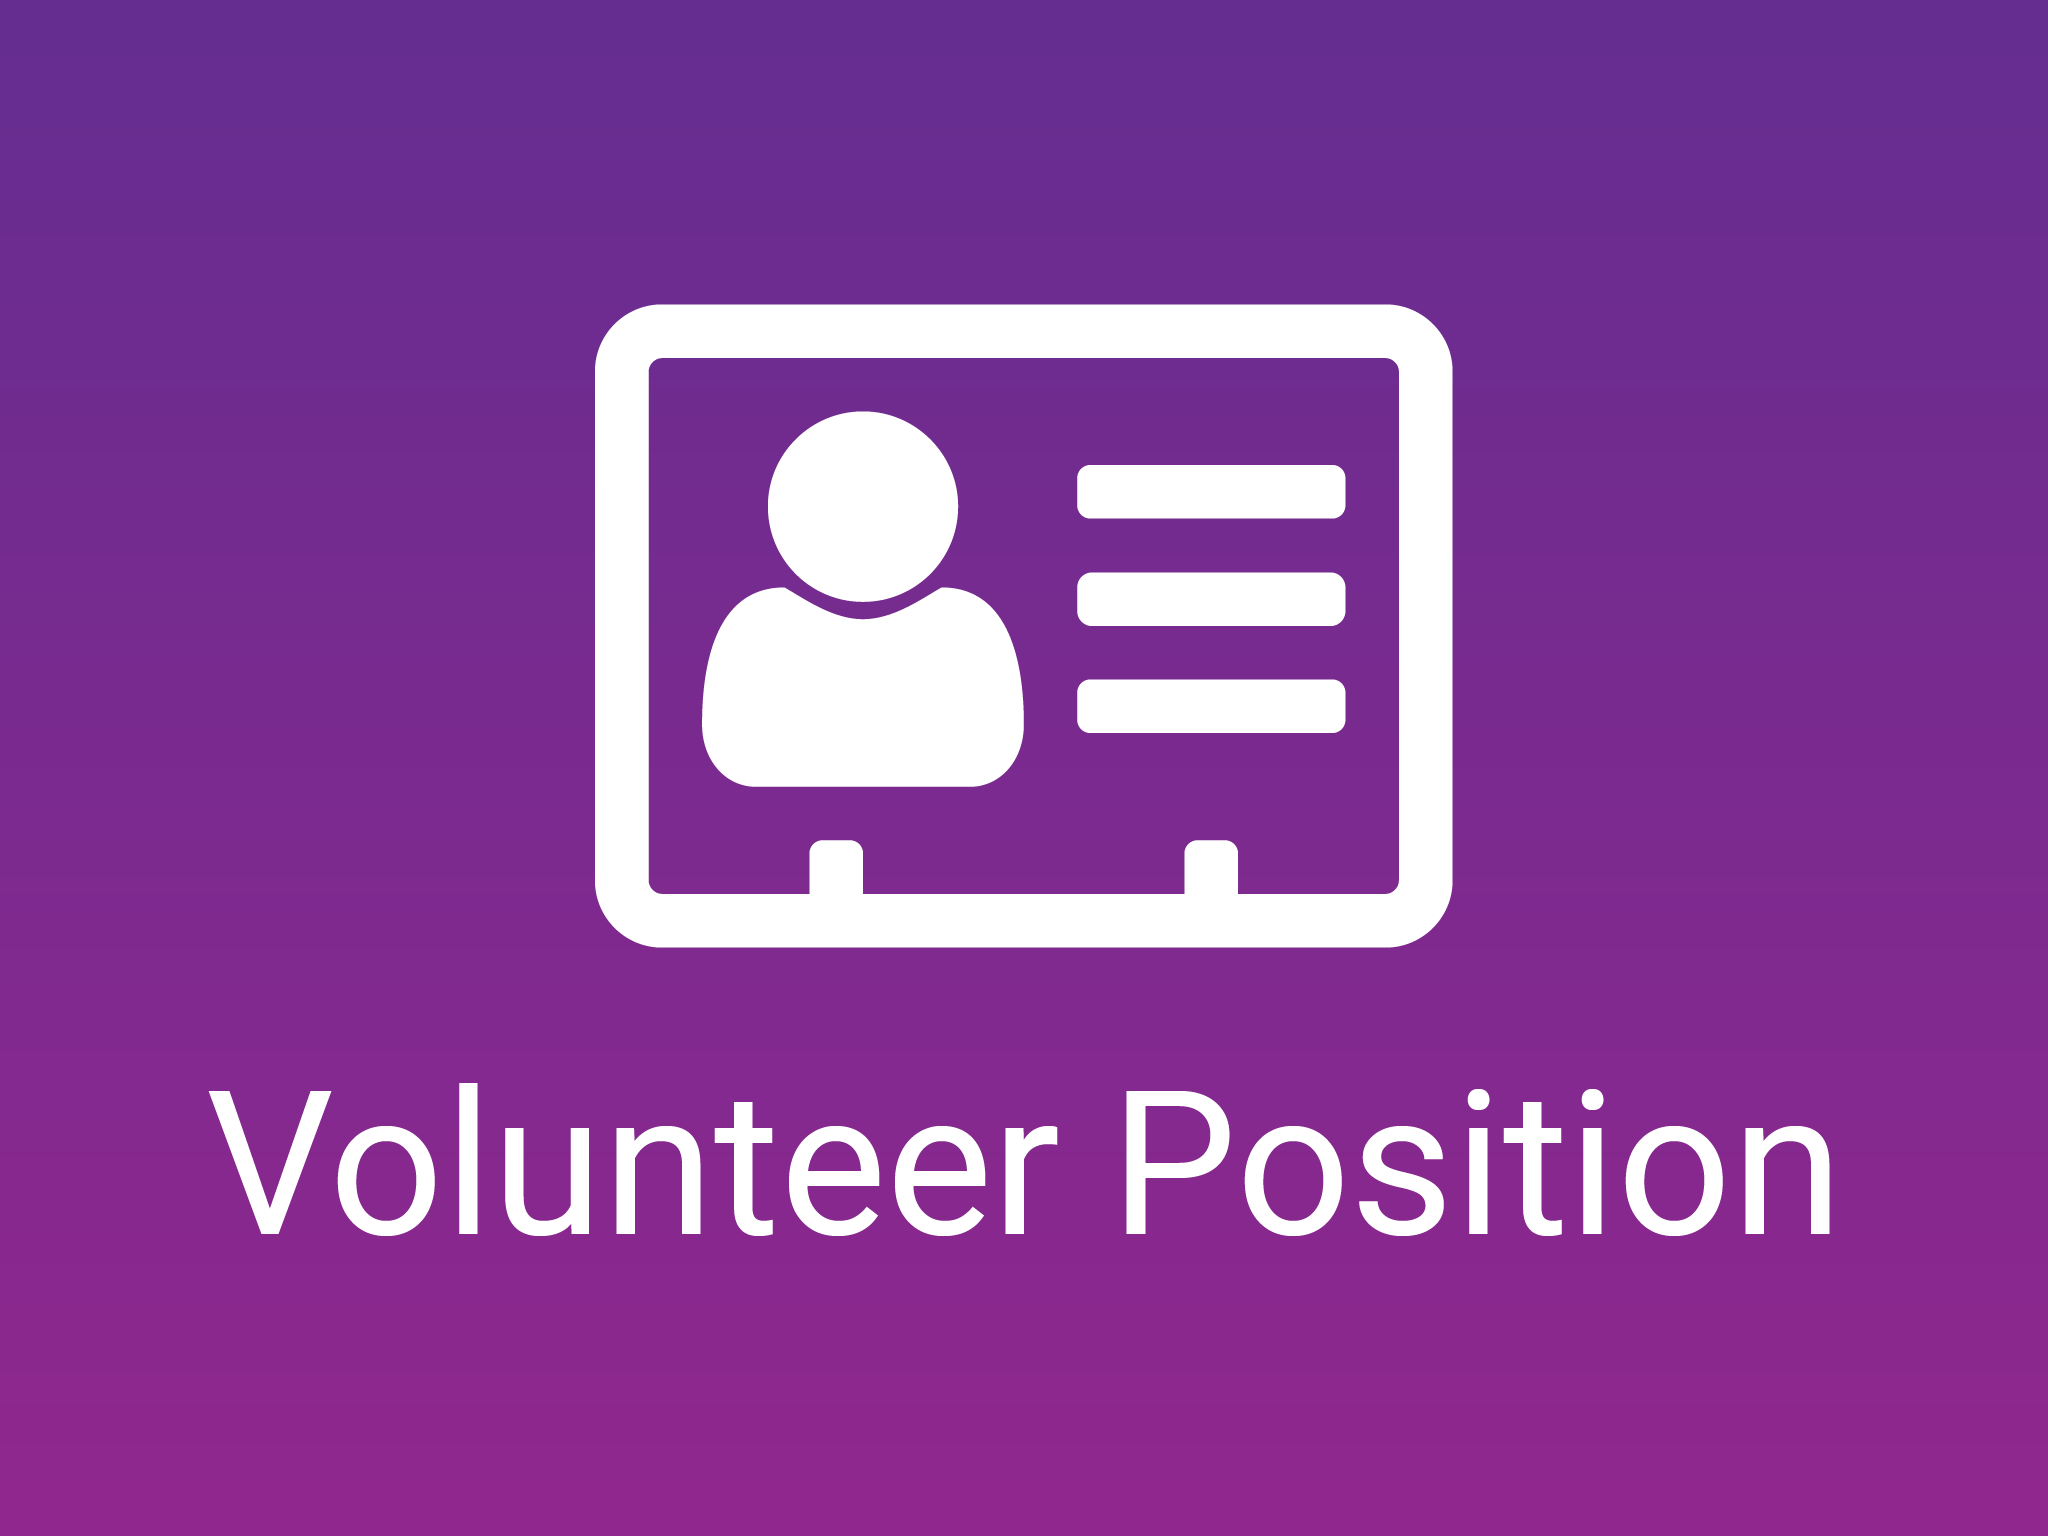 Volunteer Position